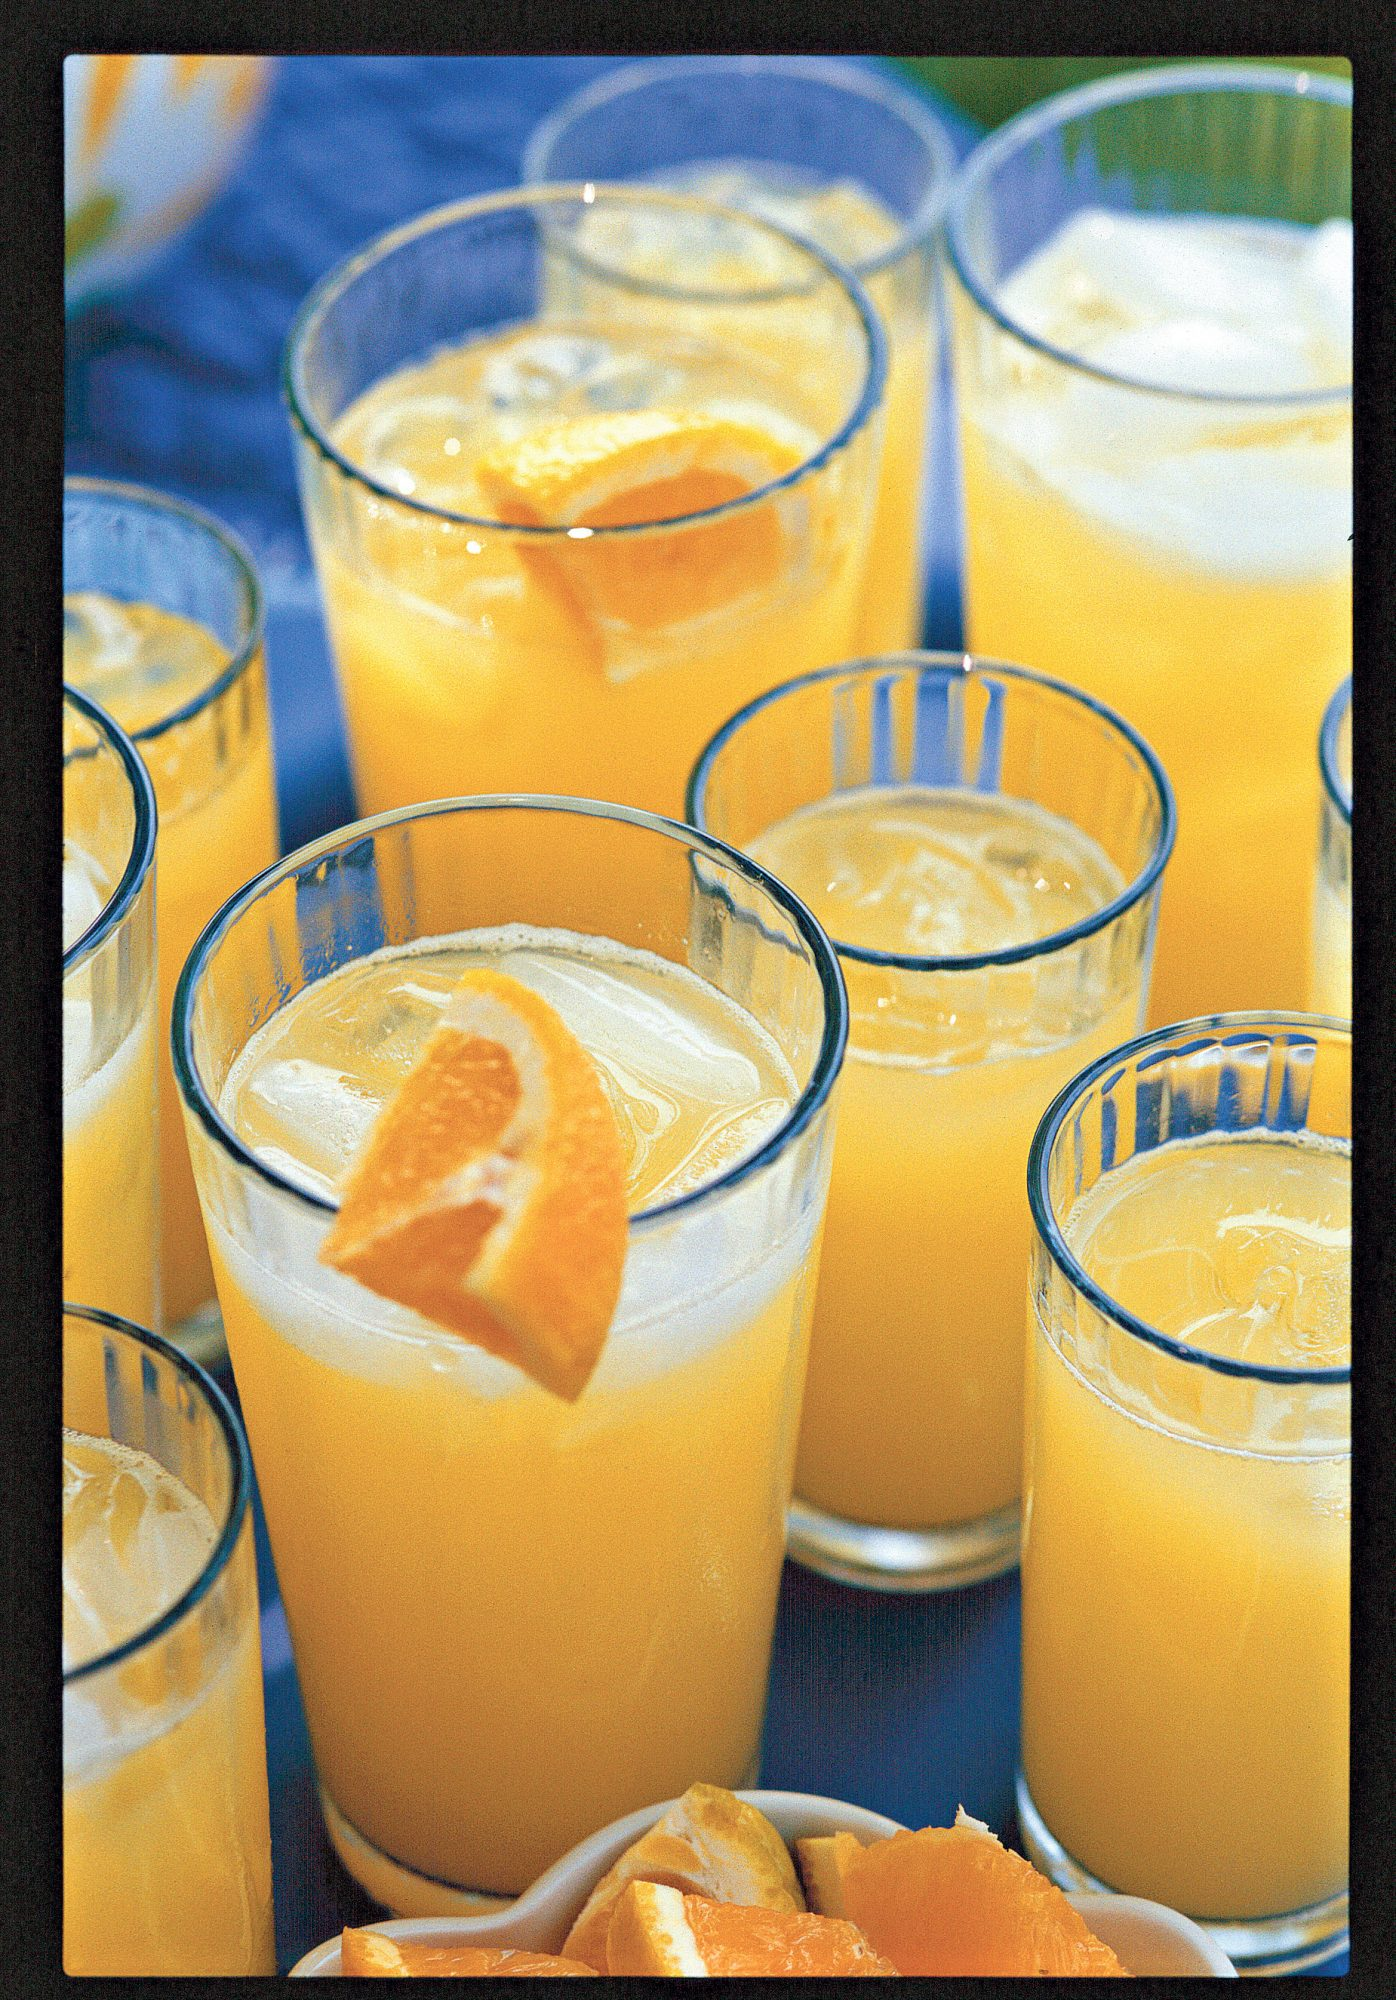 Homemade Orange Soda